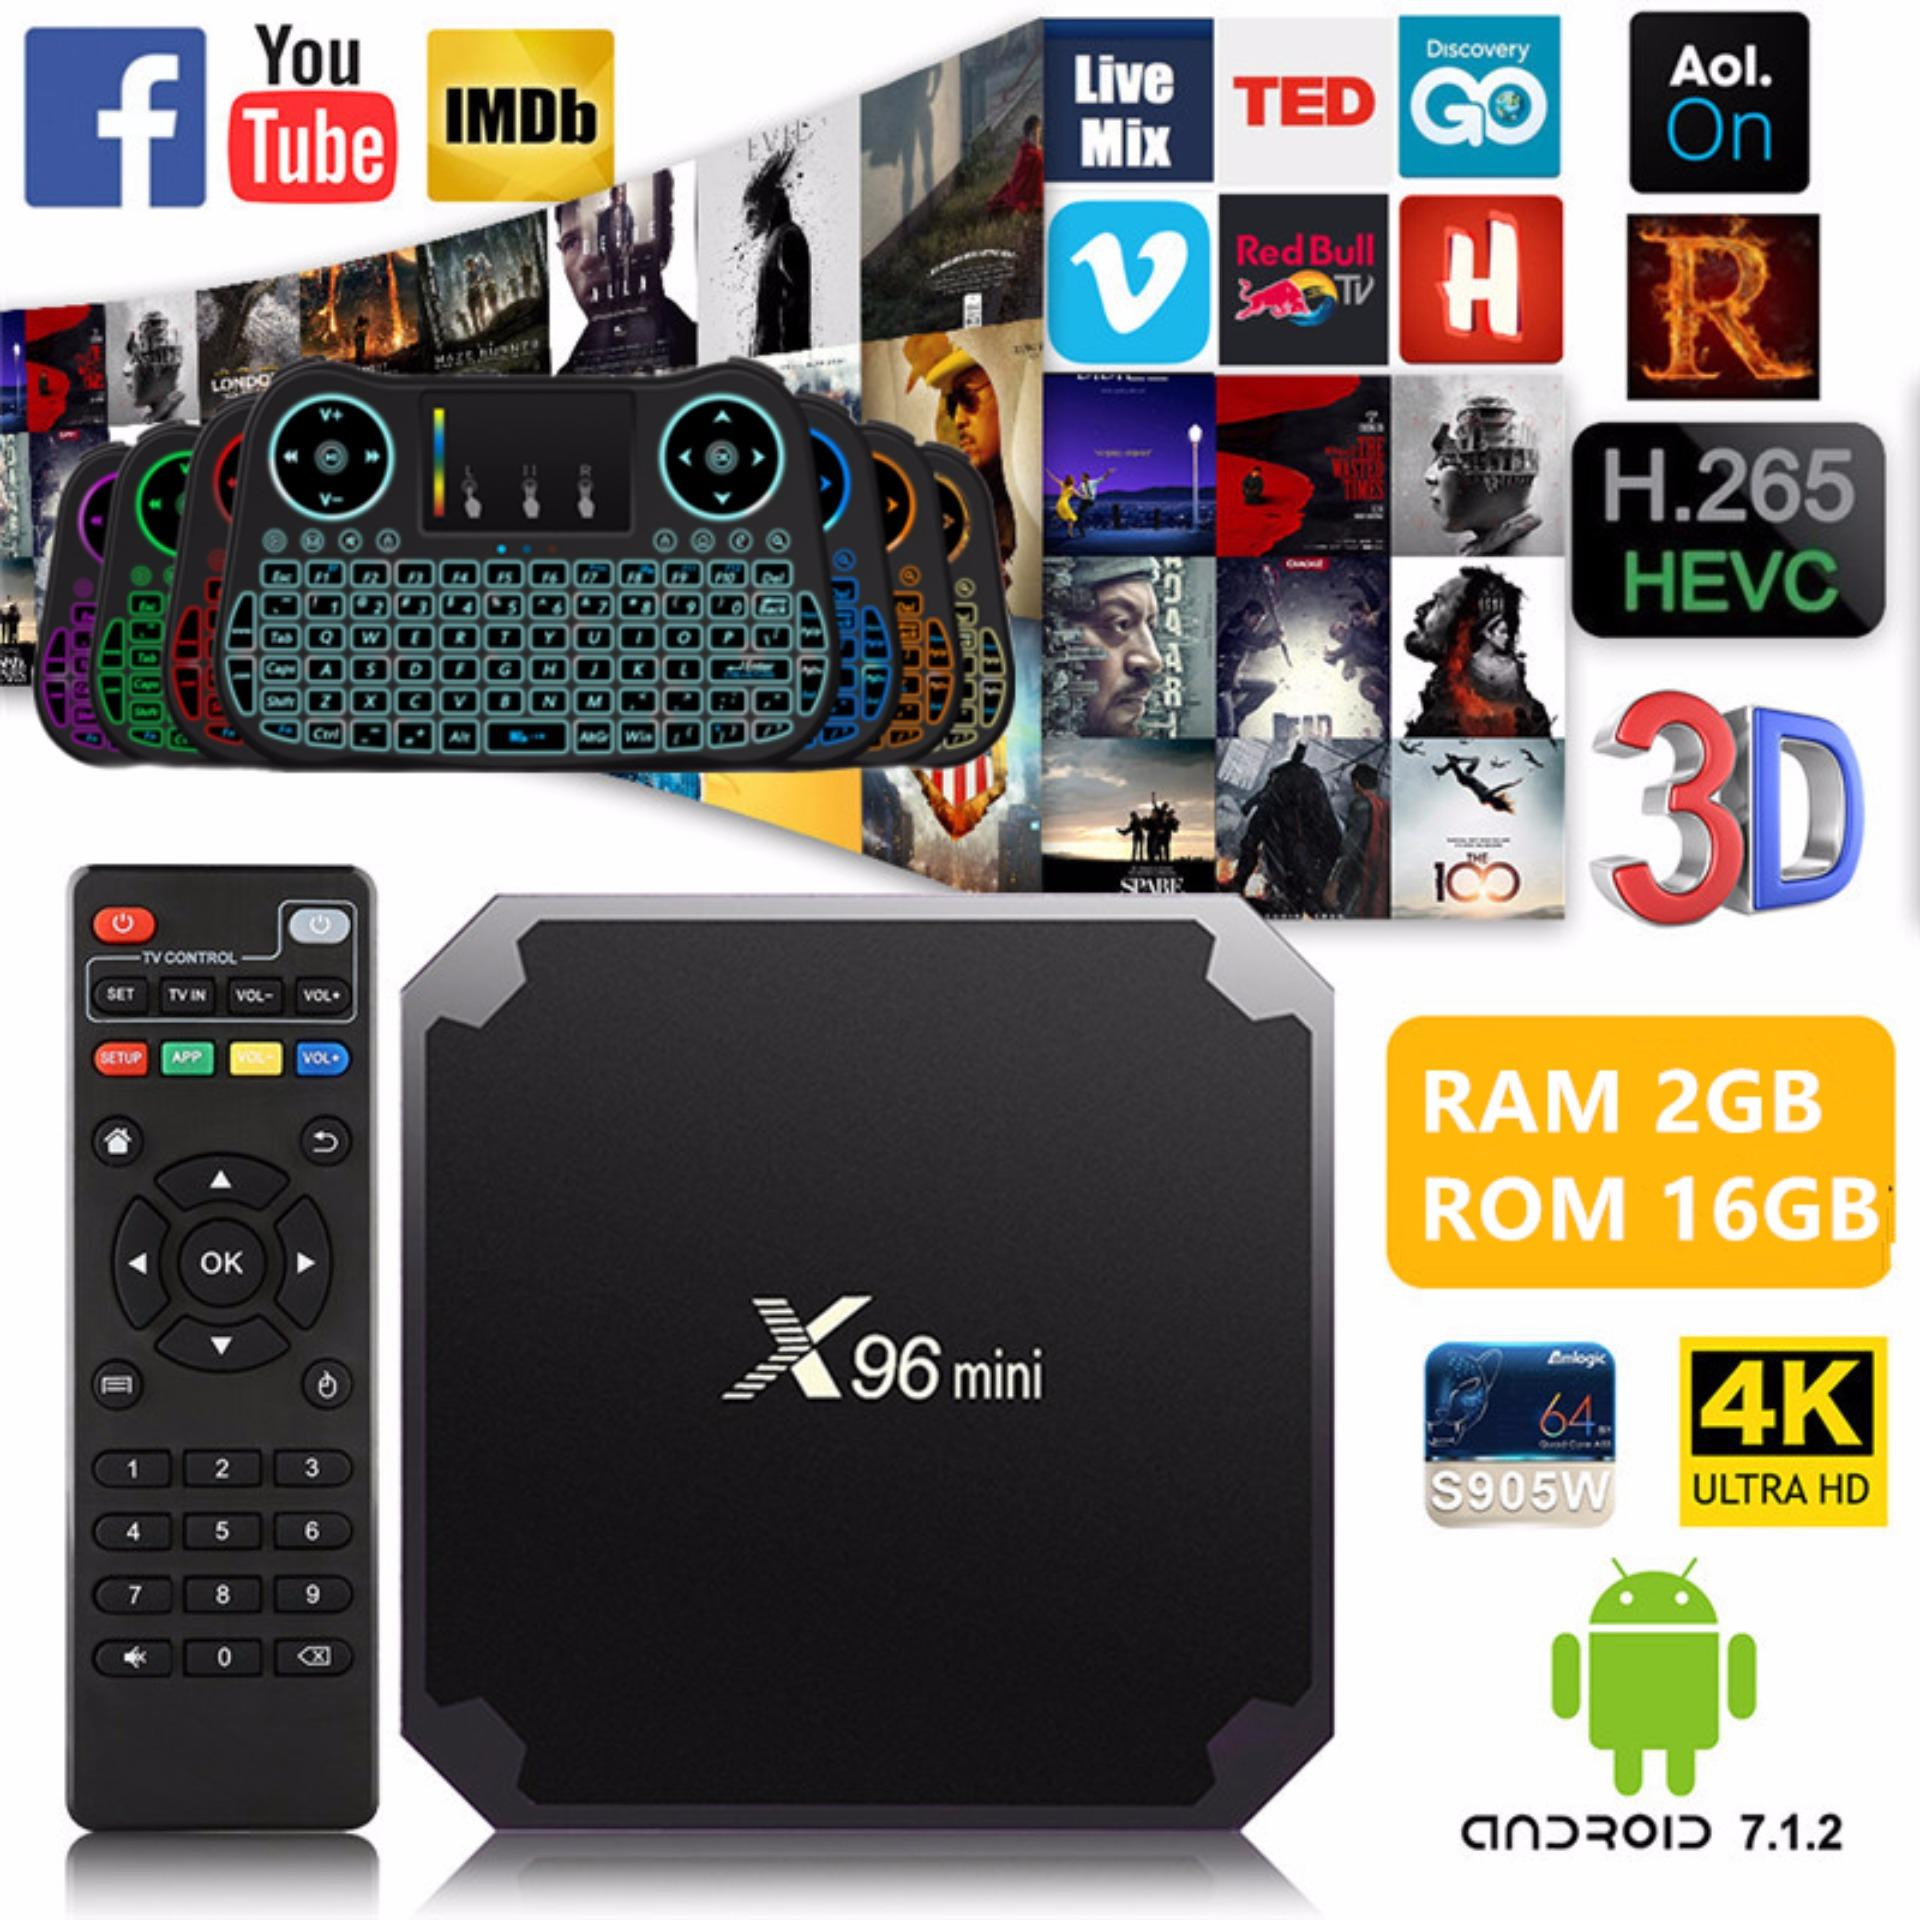 Video Streamer For Sale Media Prices Brands Specs In Android 71 Tv Box H96 Pro Plus Ram 3gb Rom 32gb Kodi Loaded Philippines